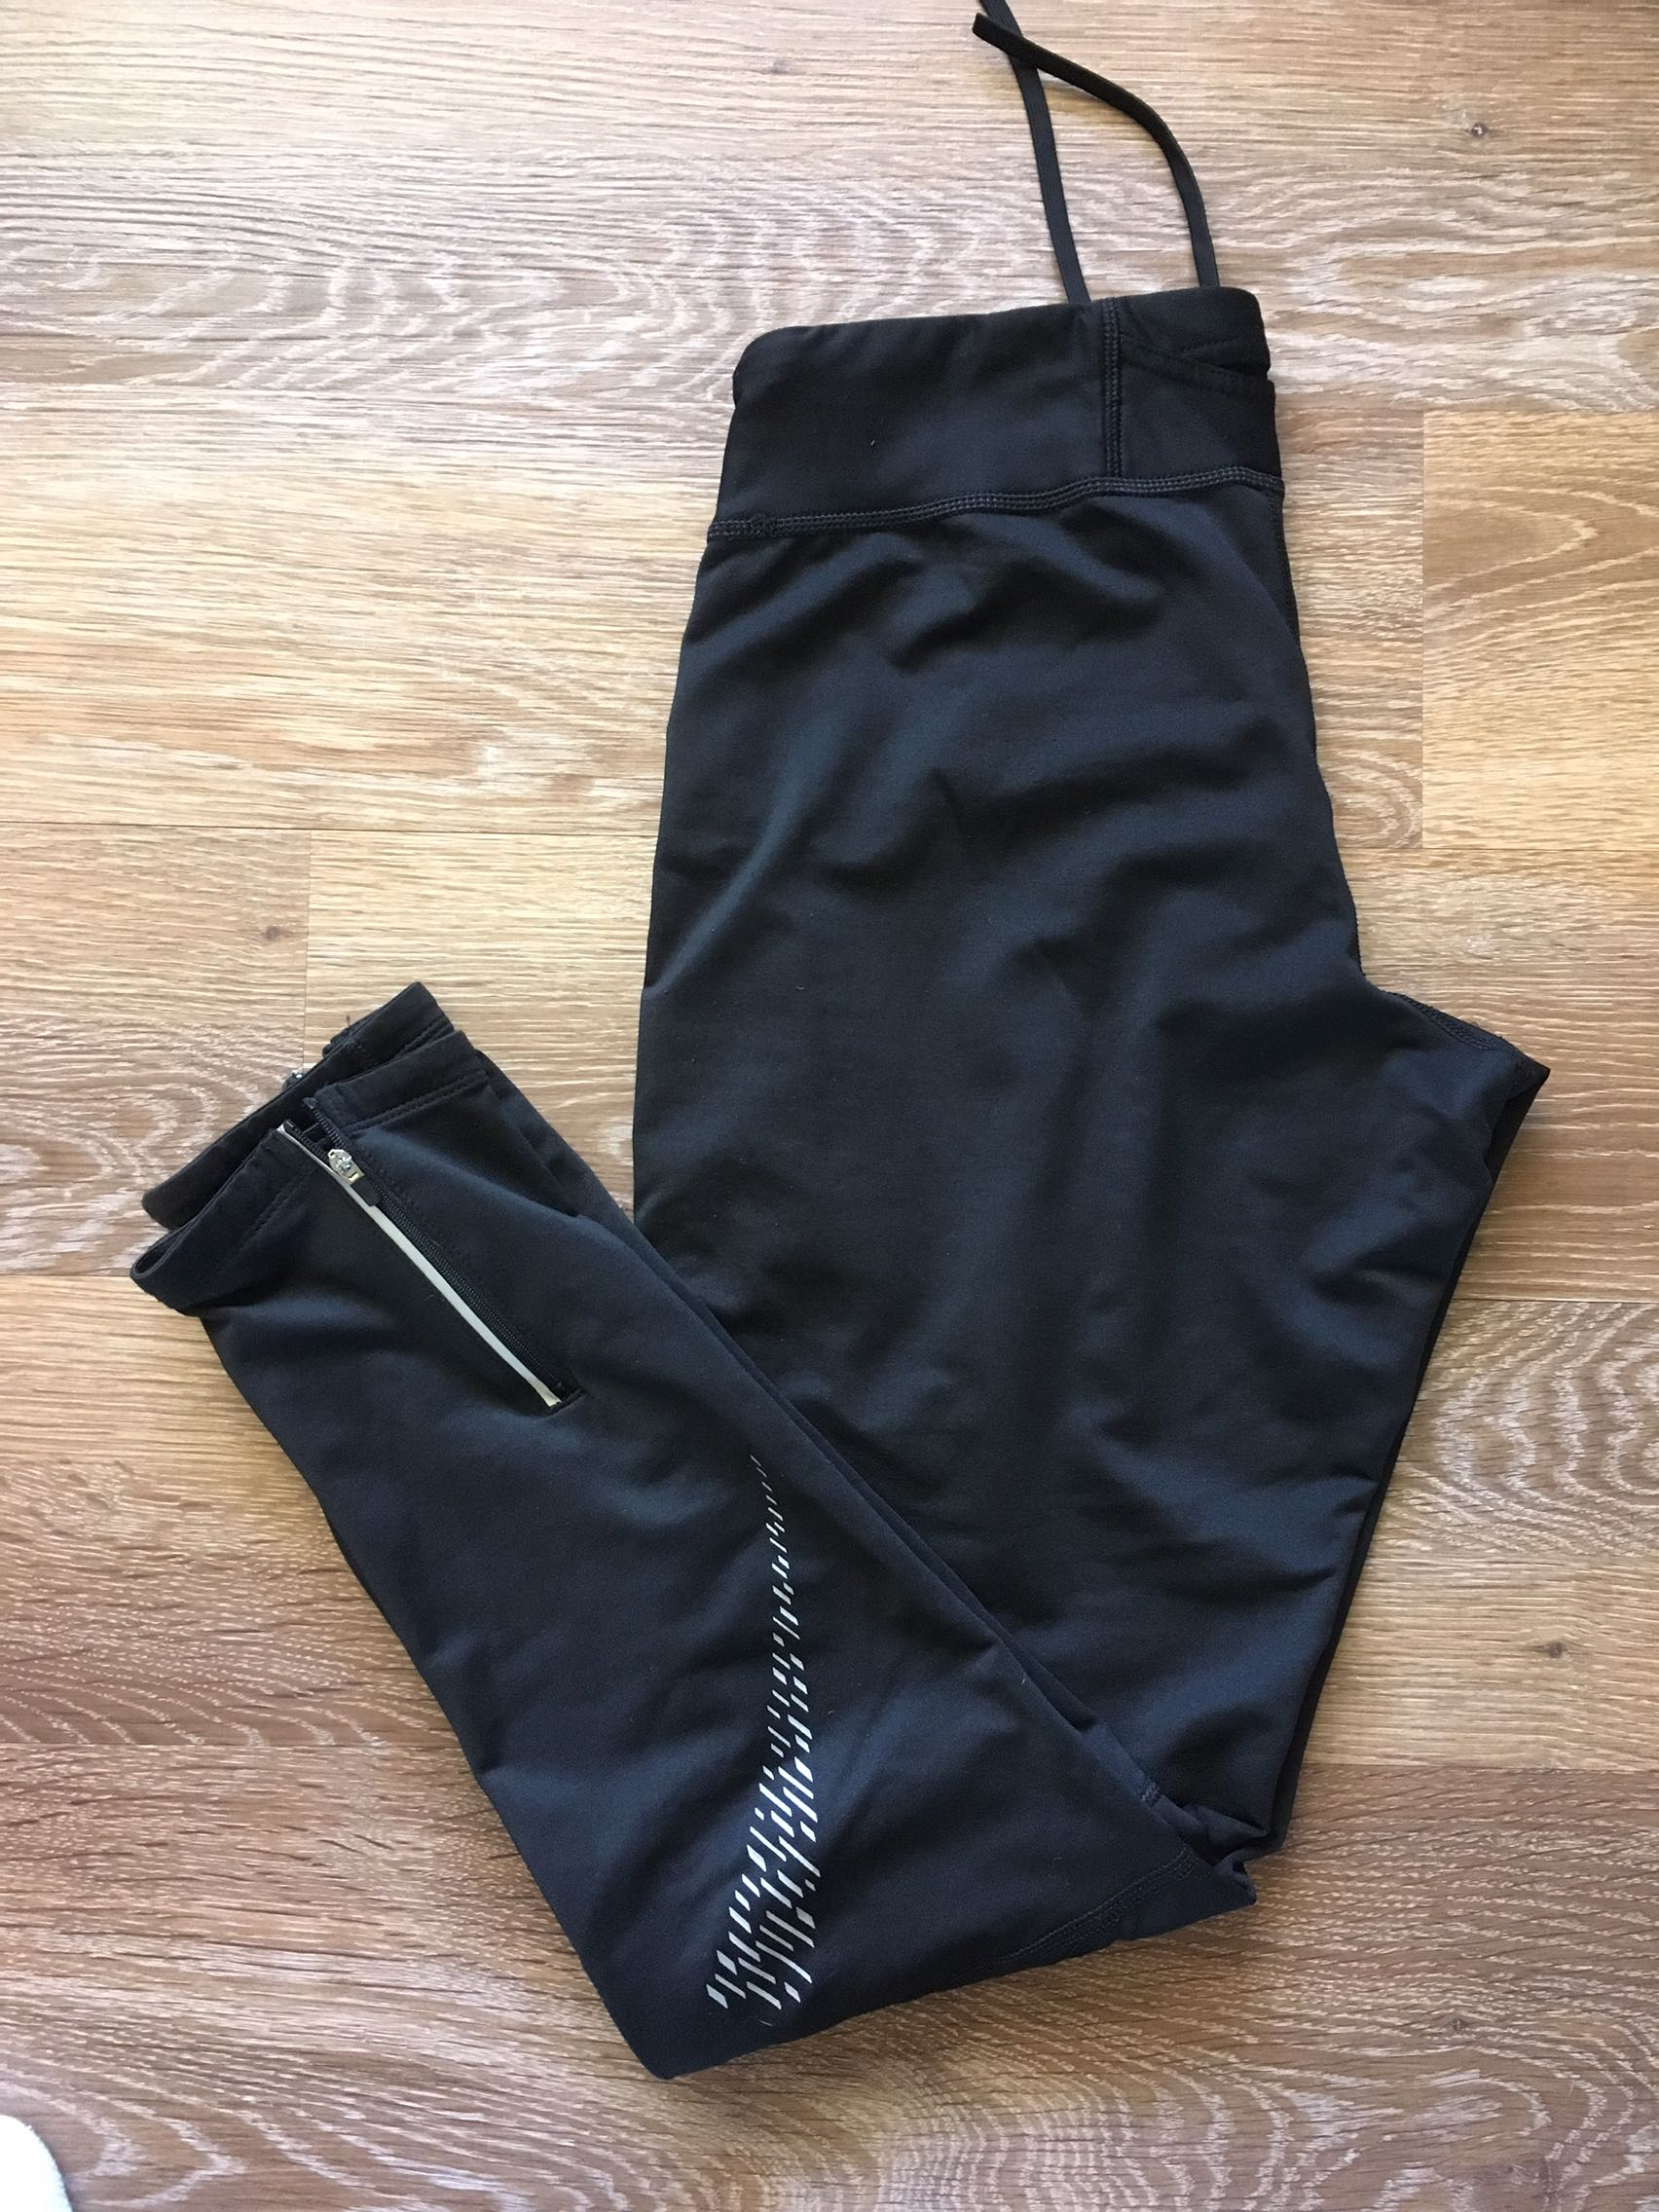 C9 lined running pants